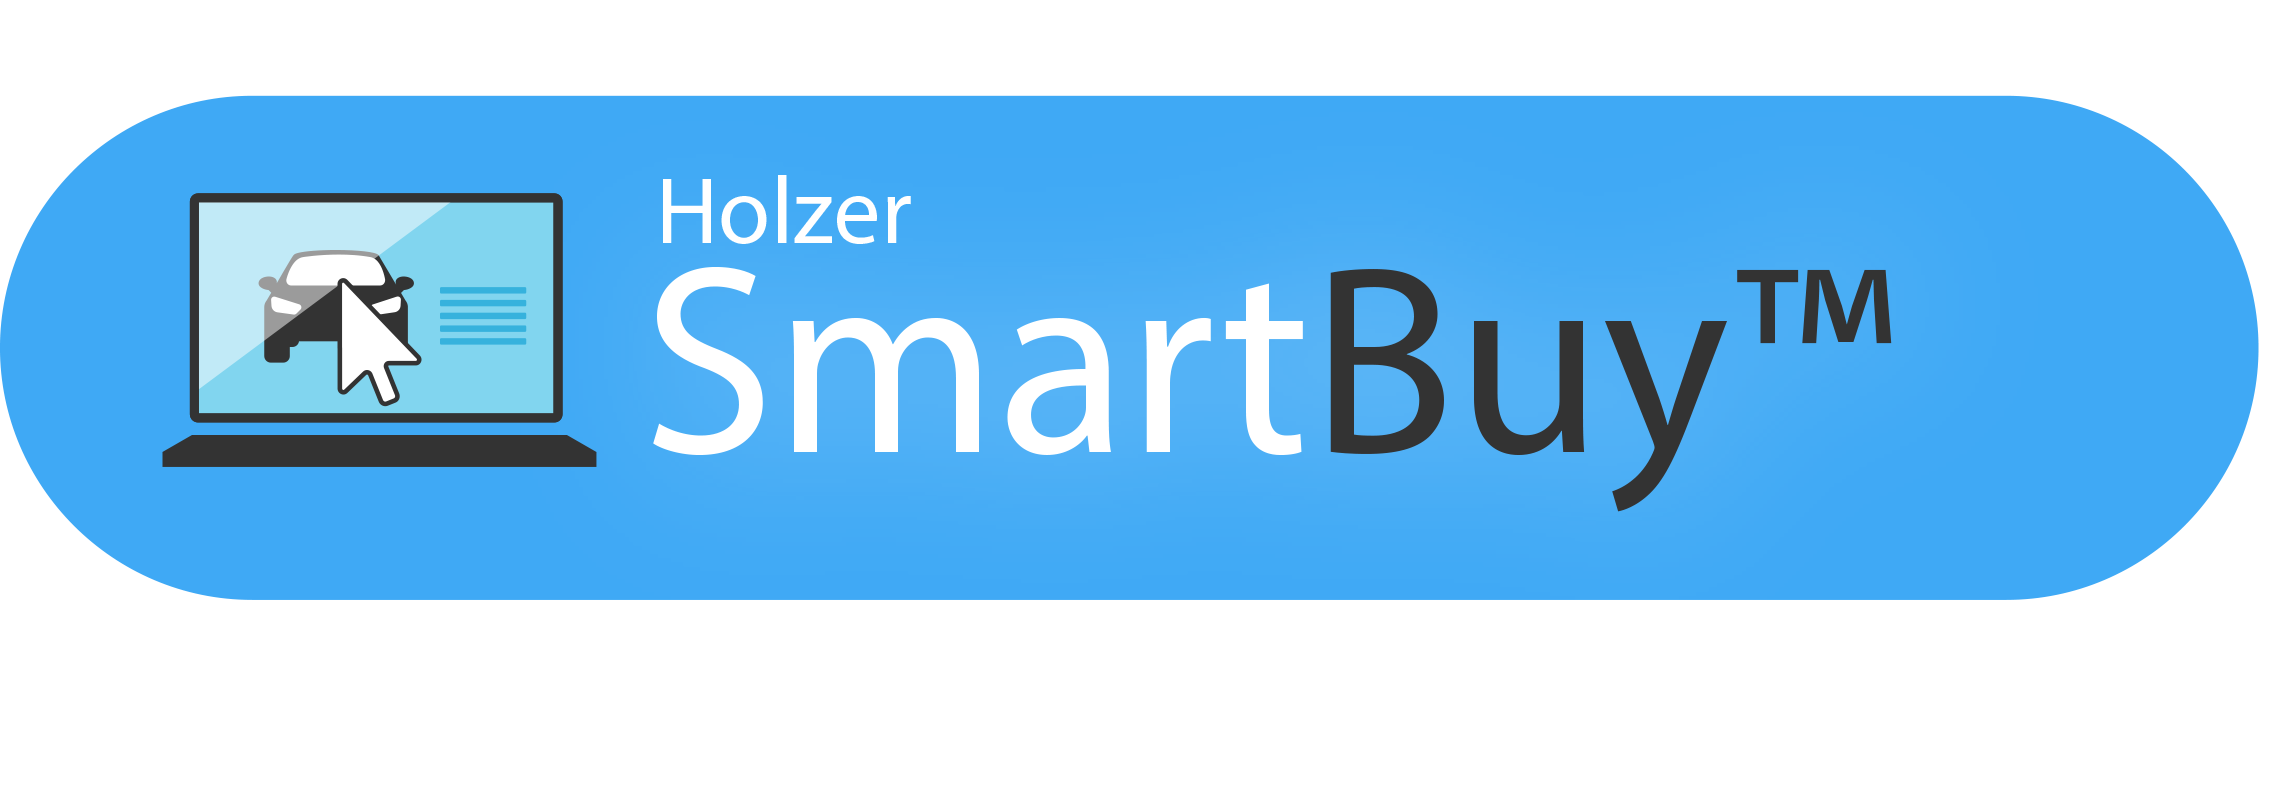 Holzer Smart Buy